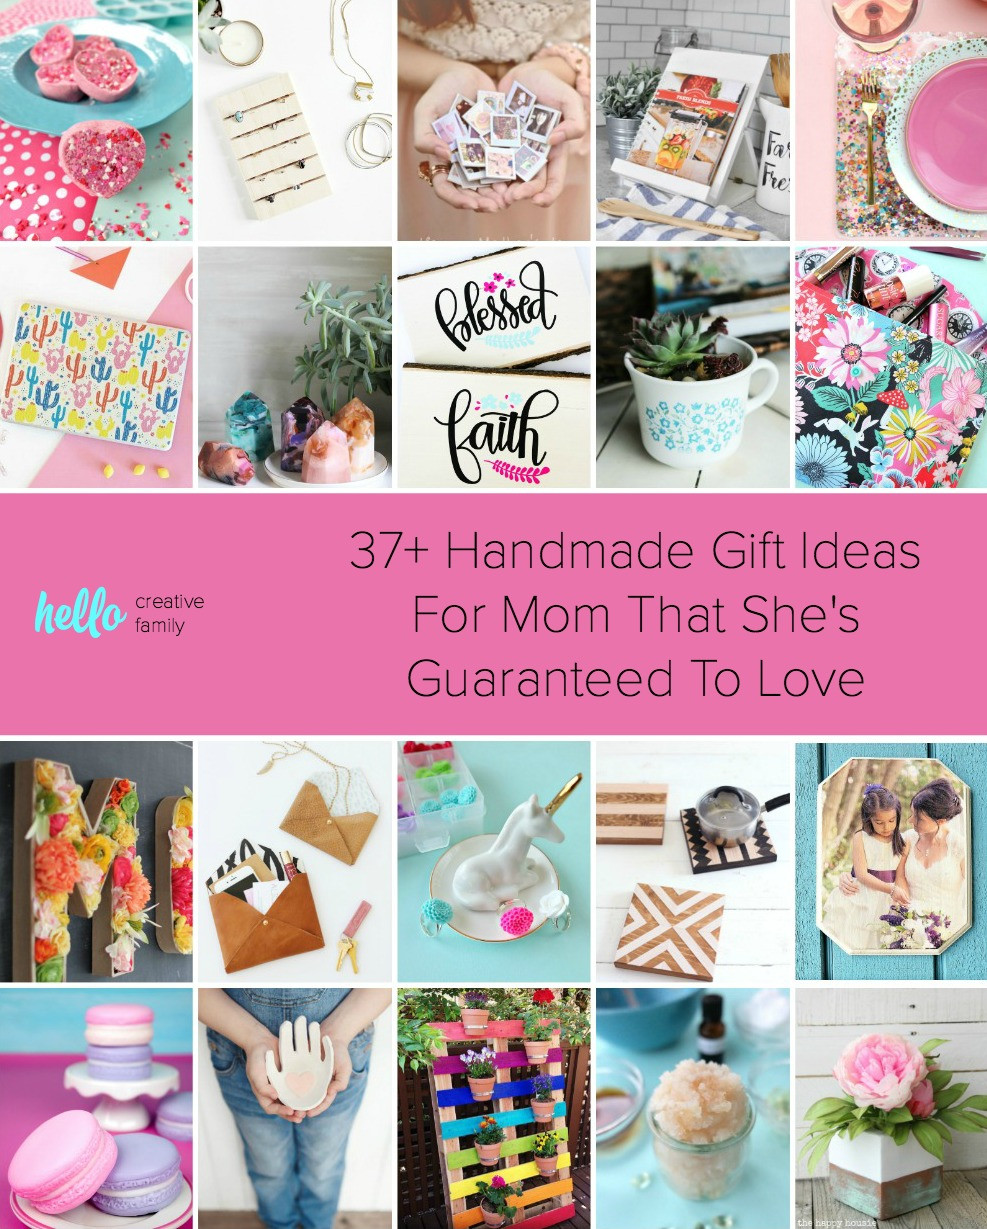 DIY Christmas Gifts For Mom From Daughter  37 Handmade Gift Ideas For Mom That She s Guaranteed To Love